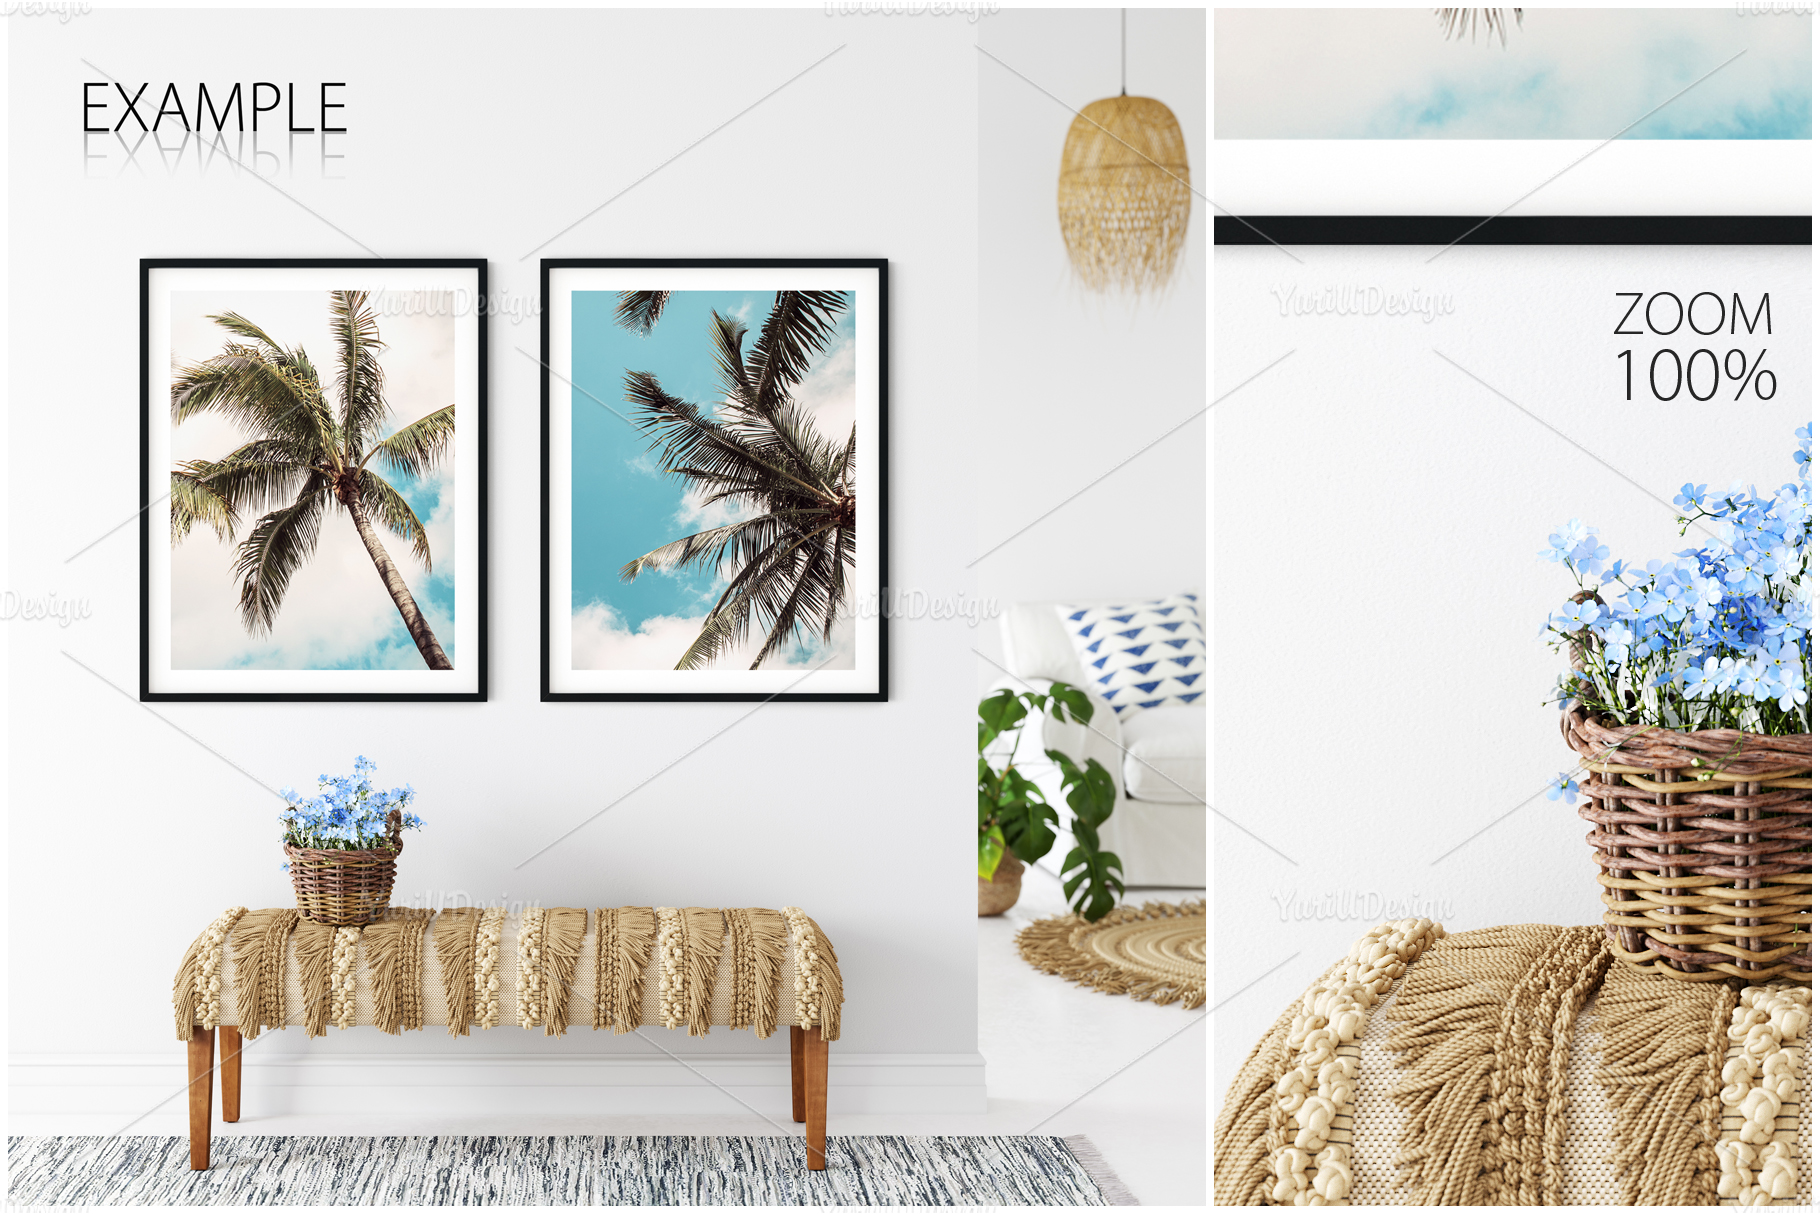 Frames & Walls Coastal Mockups Bundle example image 7